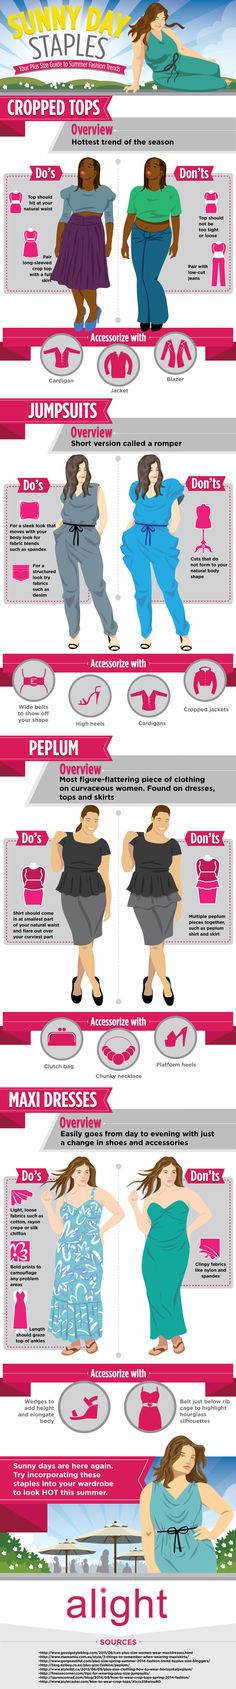 Plus Size Guide to Summer #Fashion Trends